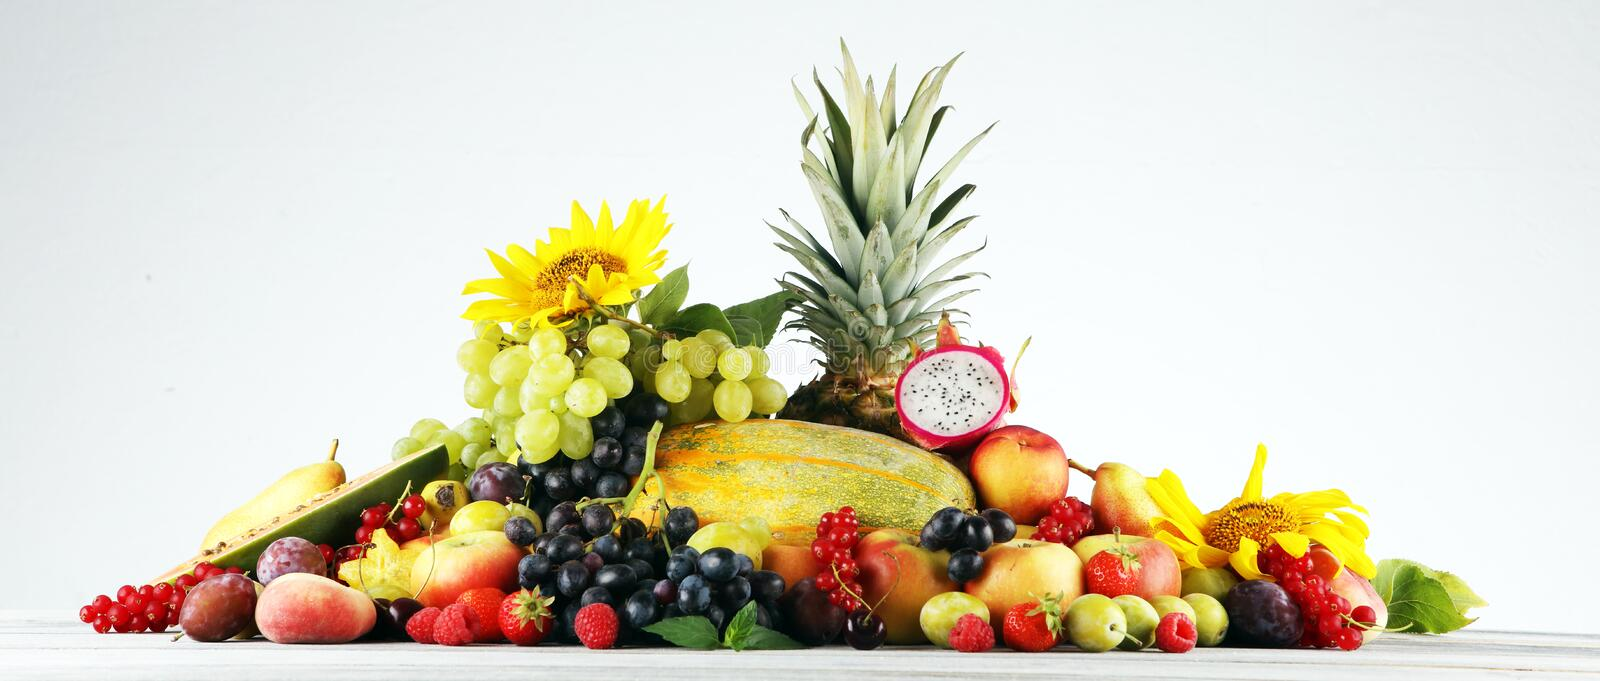 Tropical fruits background, many colorful ripe fruits with strawberries, grapes and cherries on wooden background. Tropical fruits background, many colorful ripe royalty free stock photo